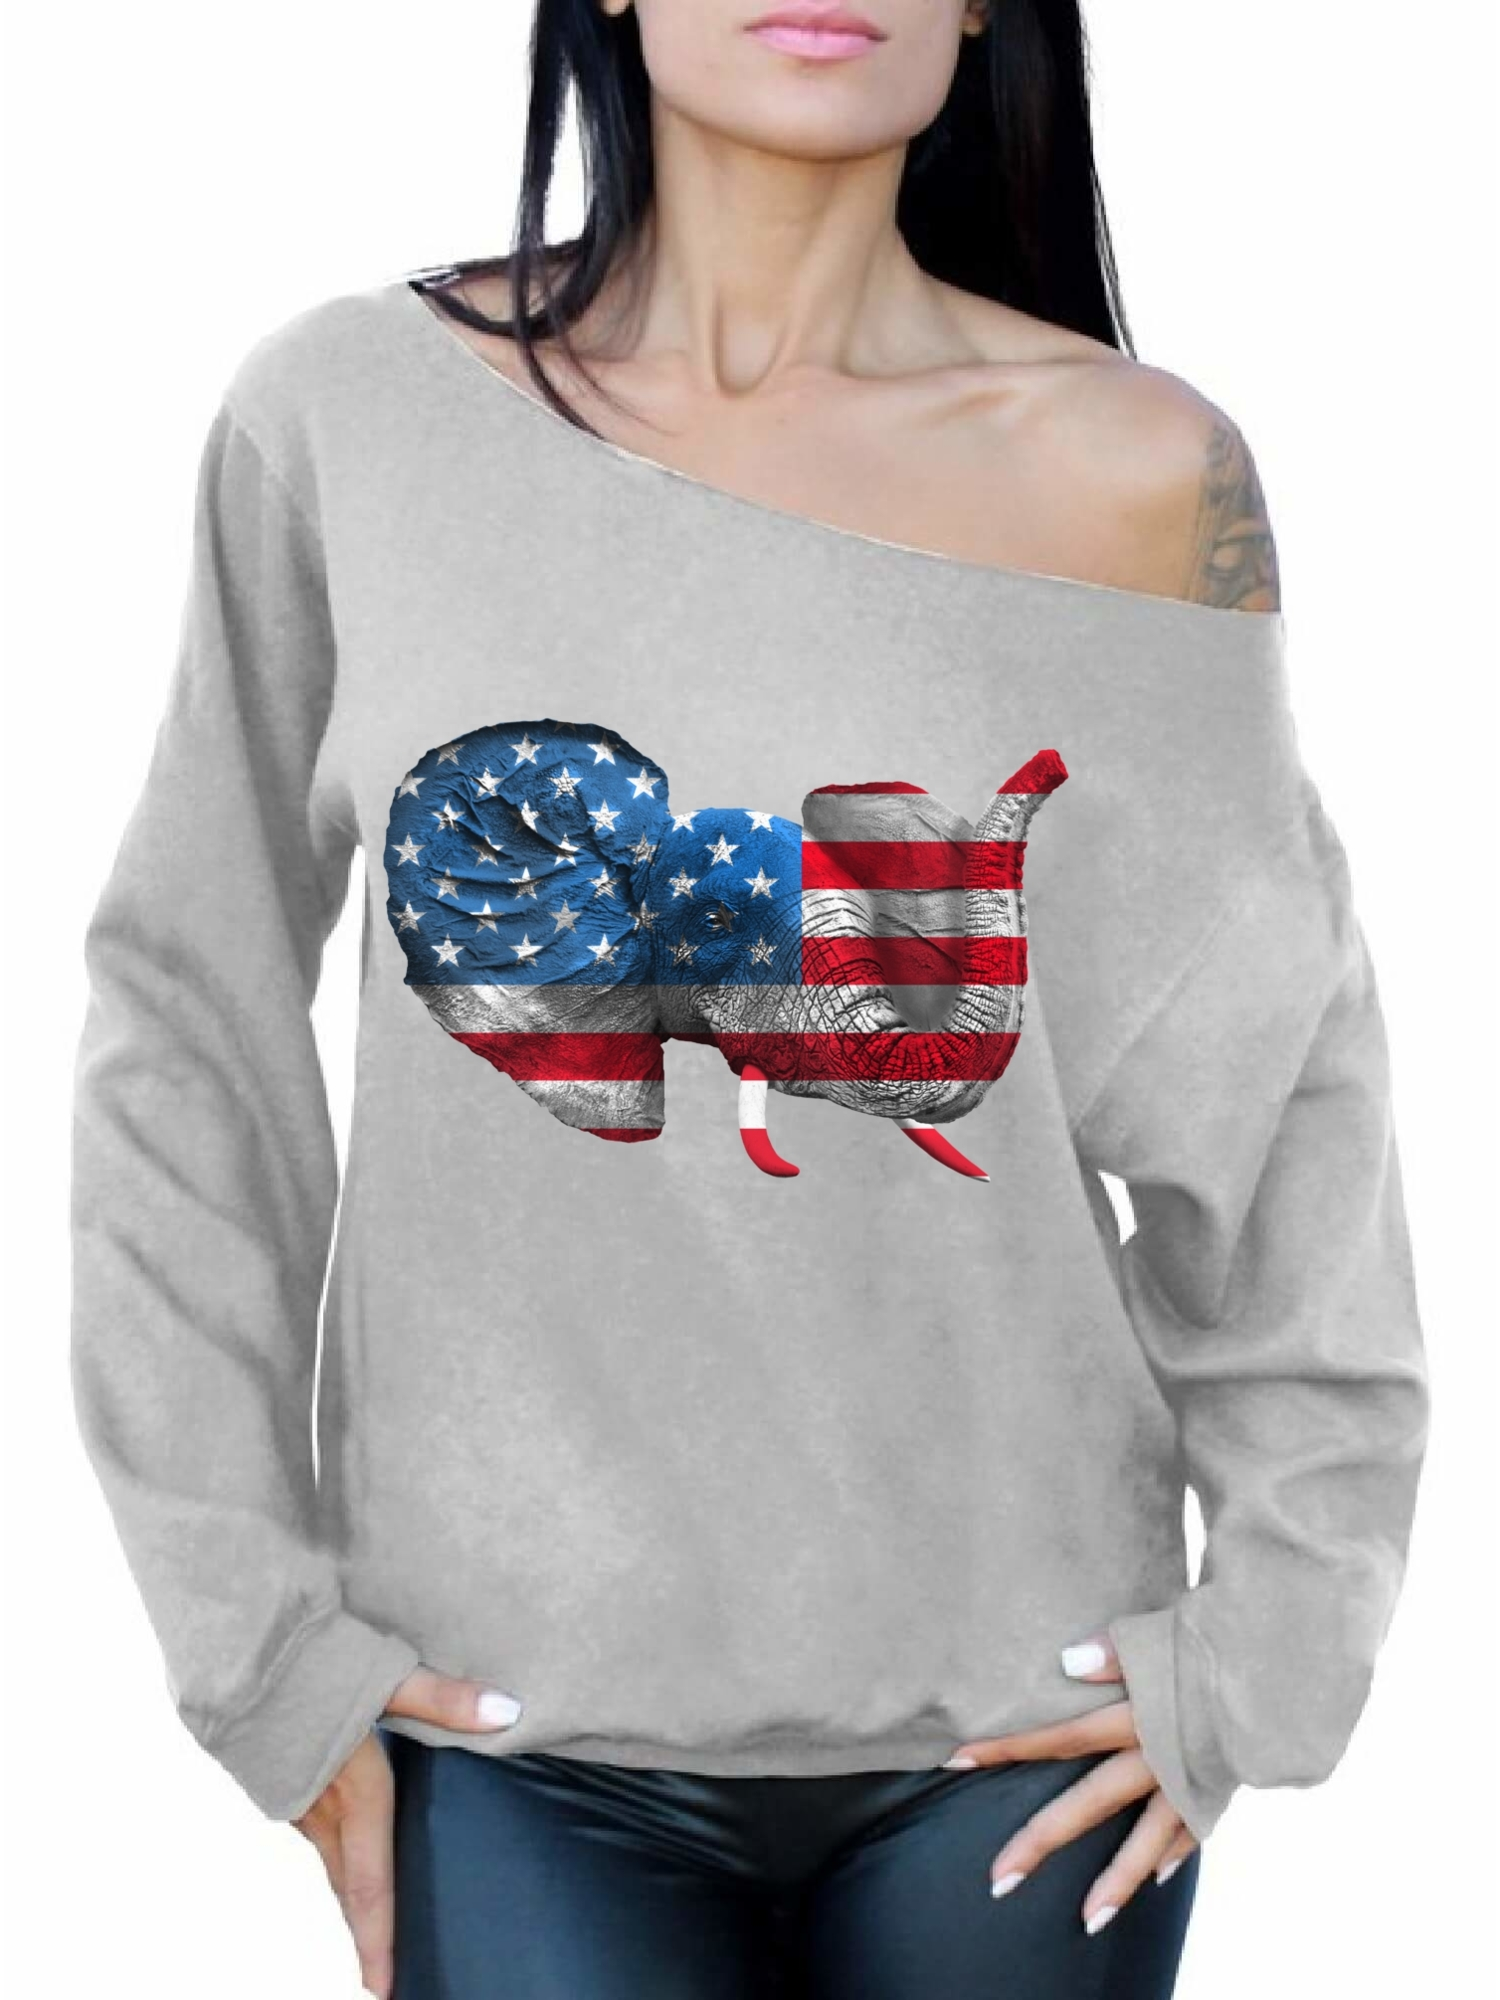 USA Flag Off the Shoulder Shirt for Women Off Shoulder Oversized Sweatshirt American Flag Patriotic 4th of July Gift Stars and Stripes